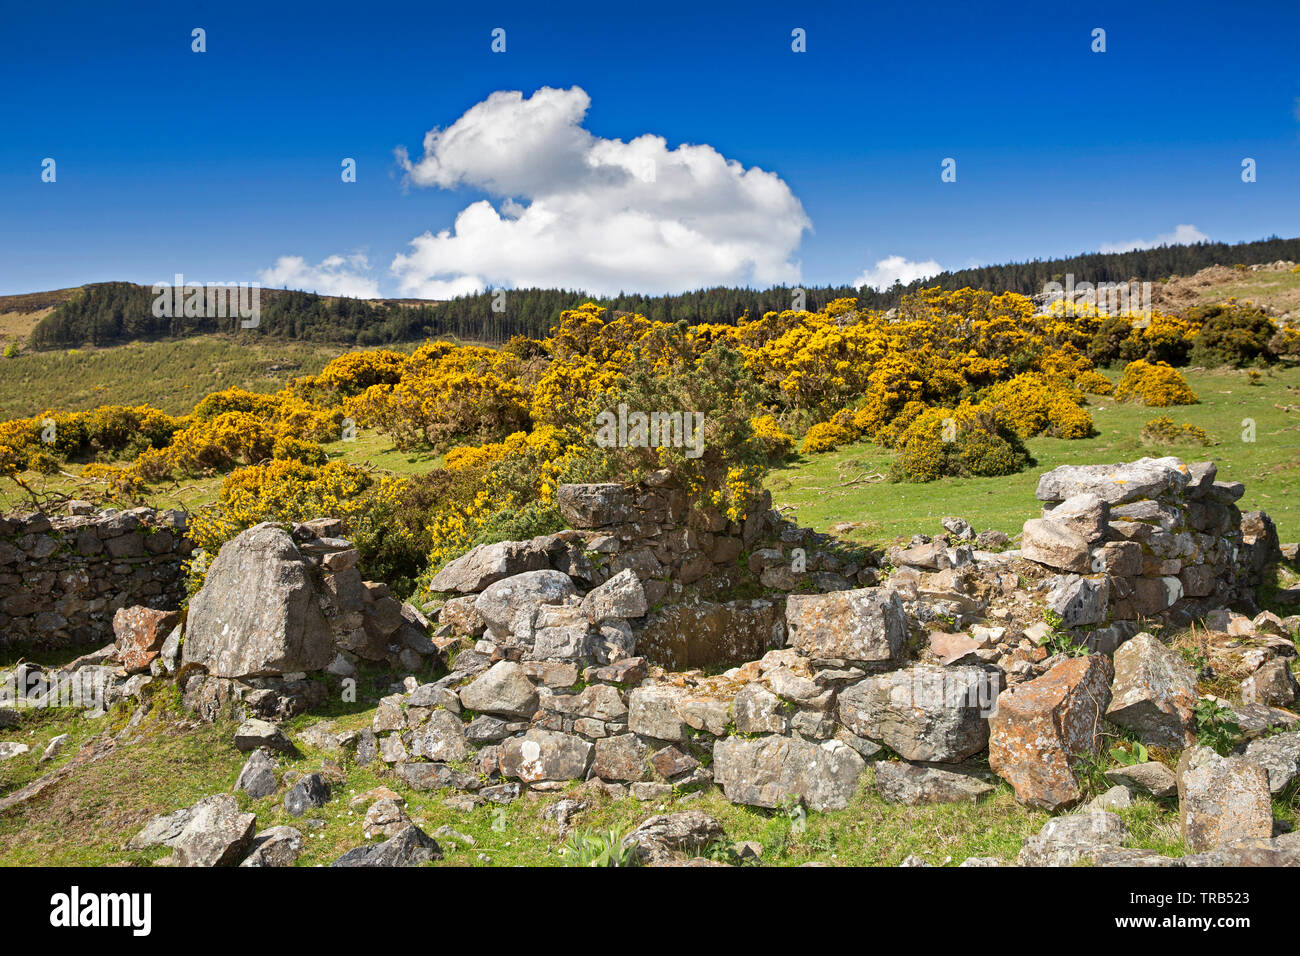 Ireland, Co Louth, Cooley Peninsula, Rooskey, ruins of house wall in abandoned pre-famine village - Stock Image